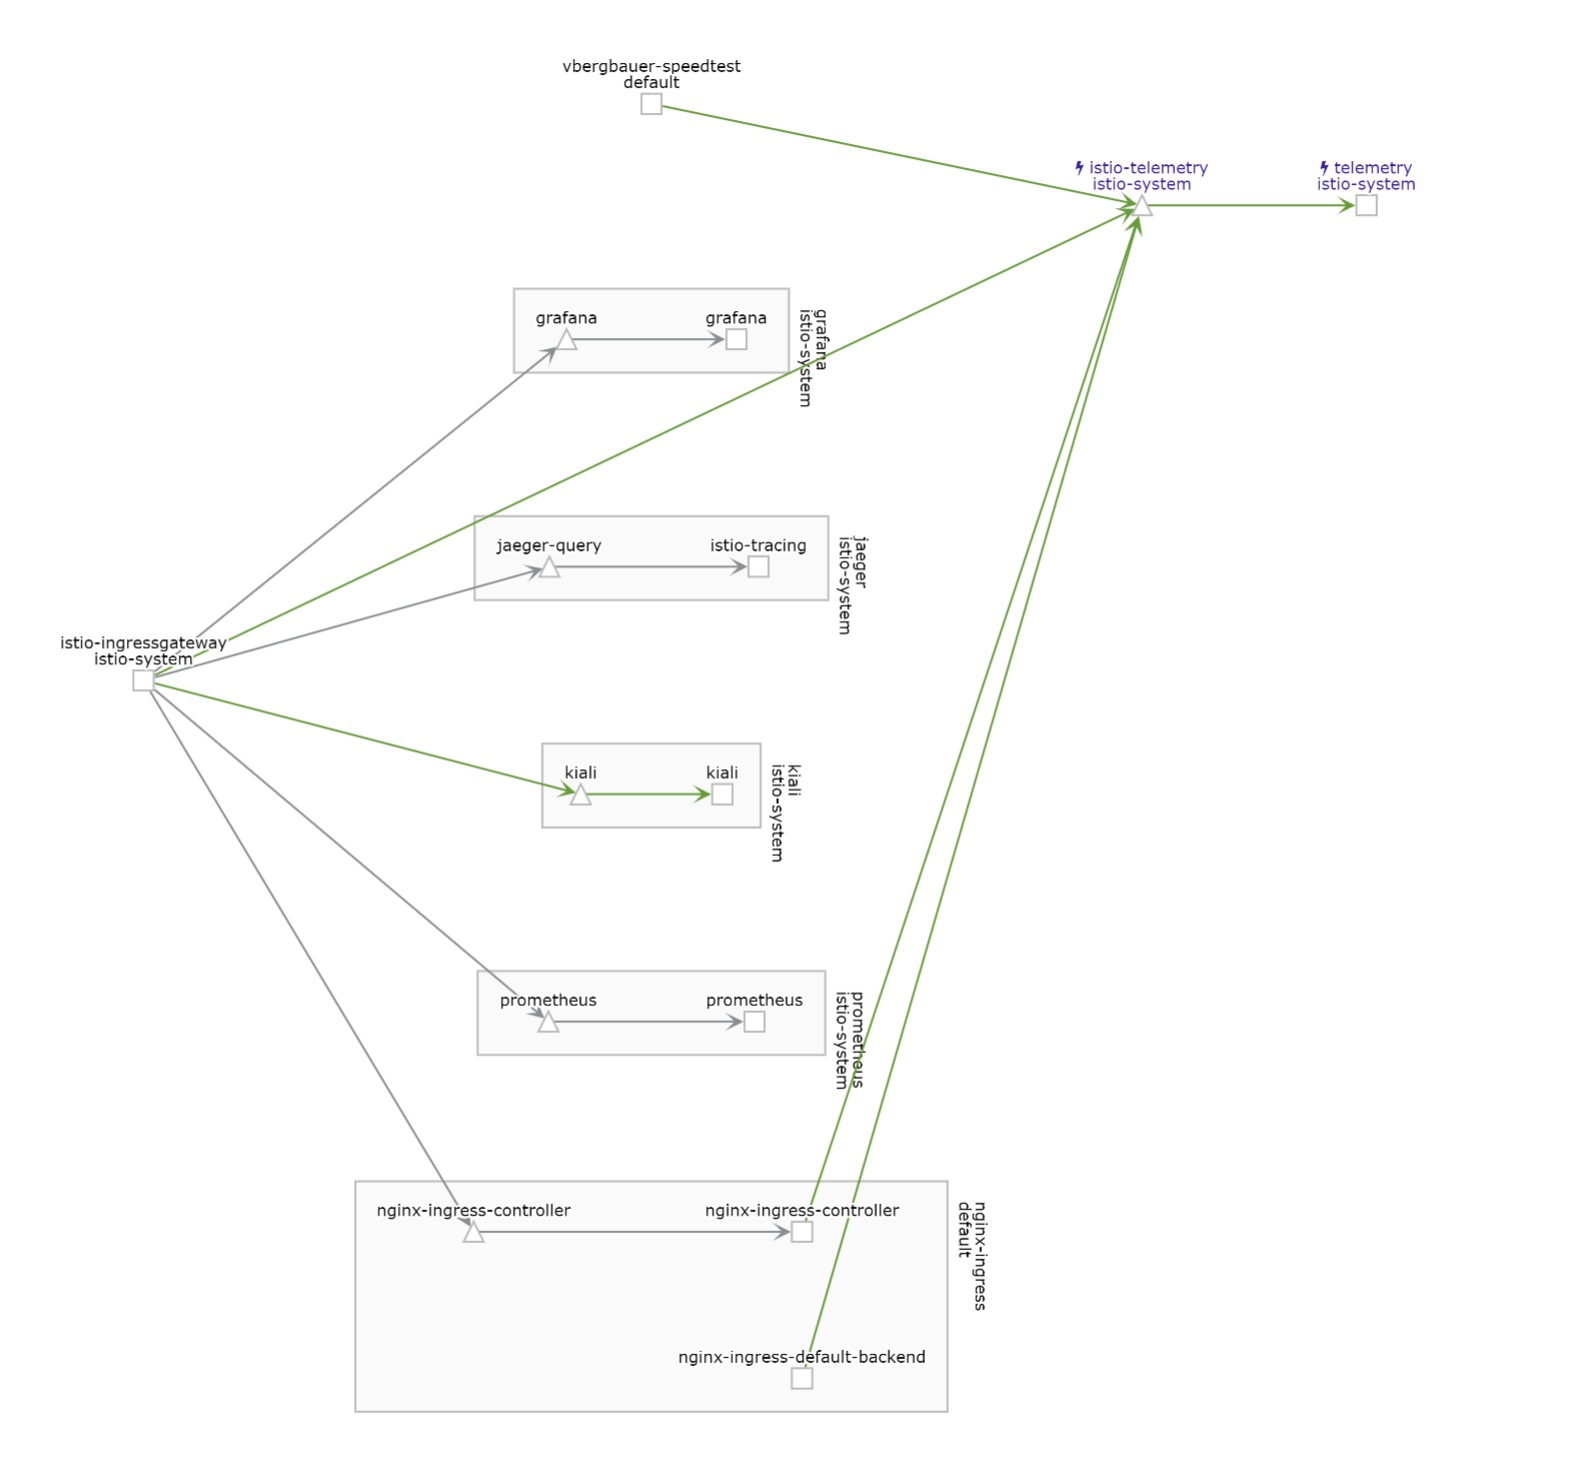 Missing graph edge kubernetes services · Issue #1151 · kiali